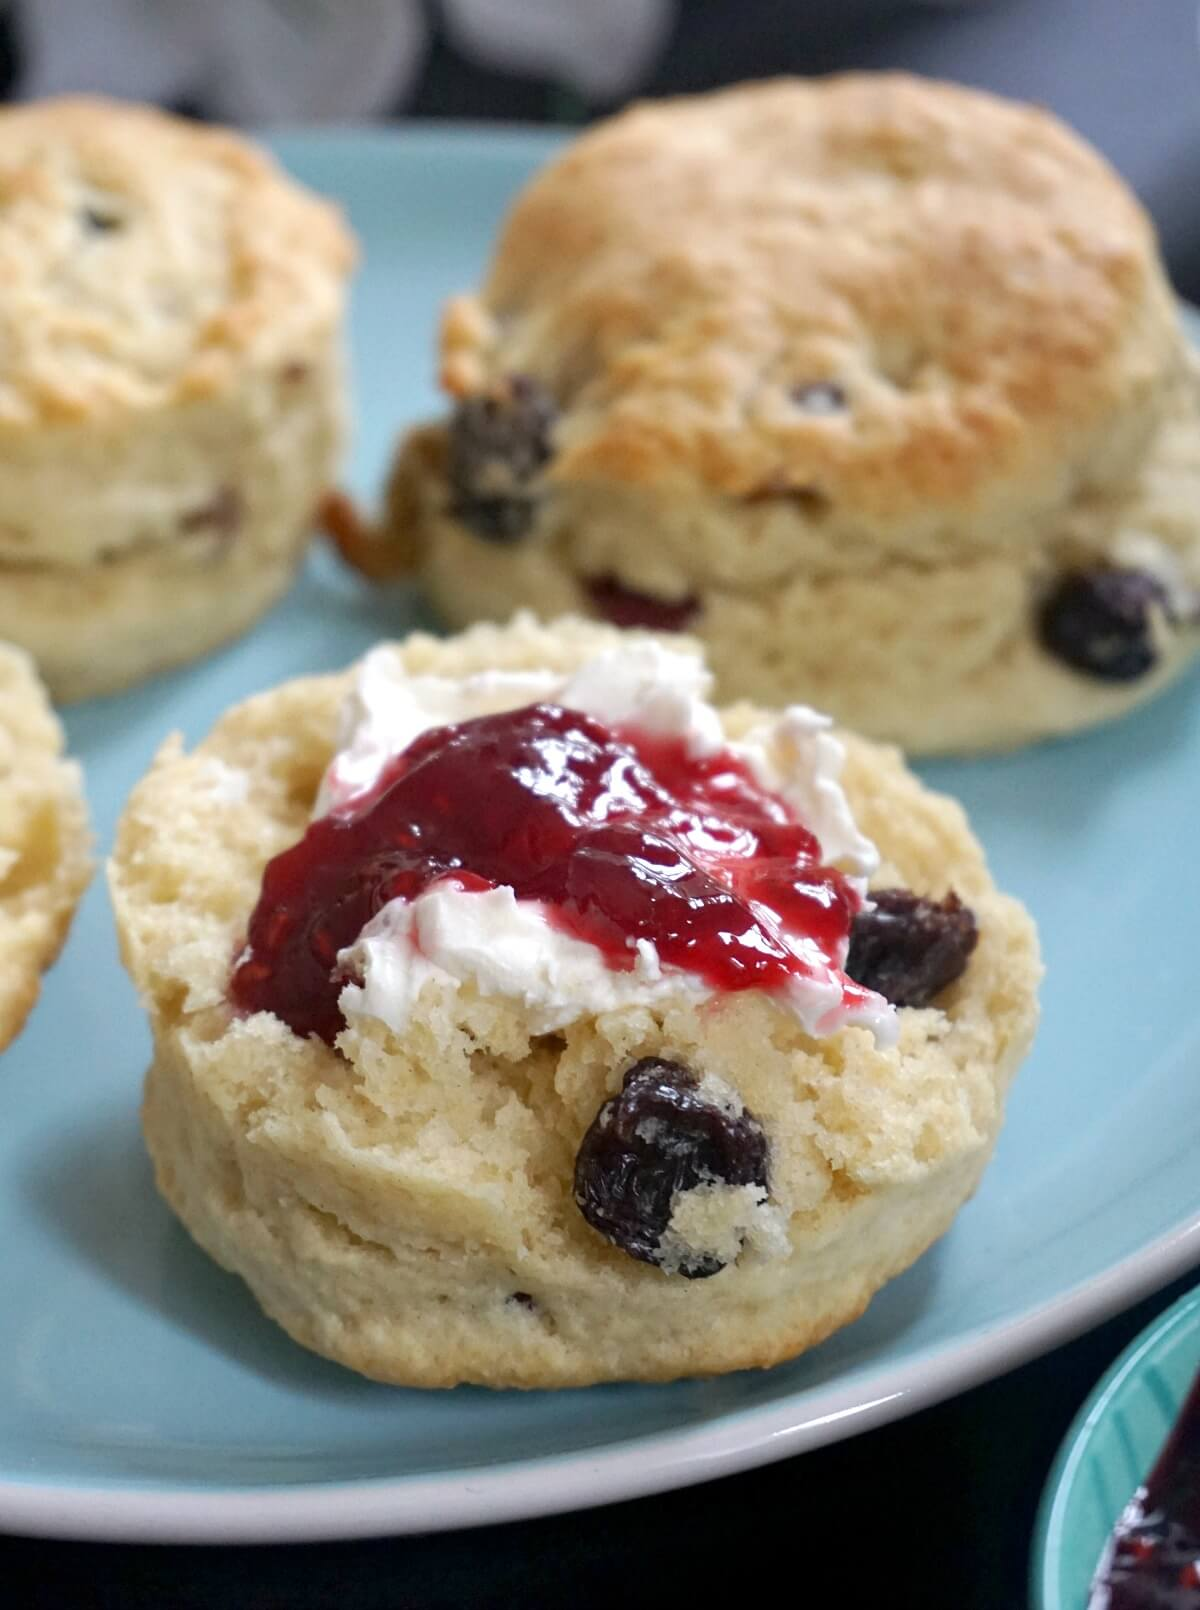 Close-up shoot of a half a scone with cream and jam